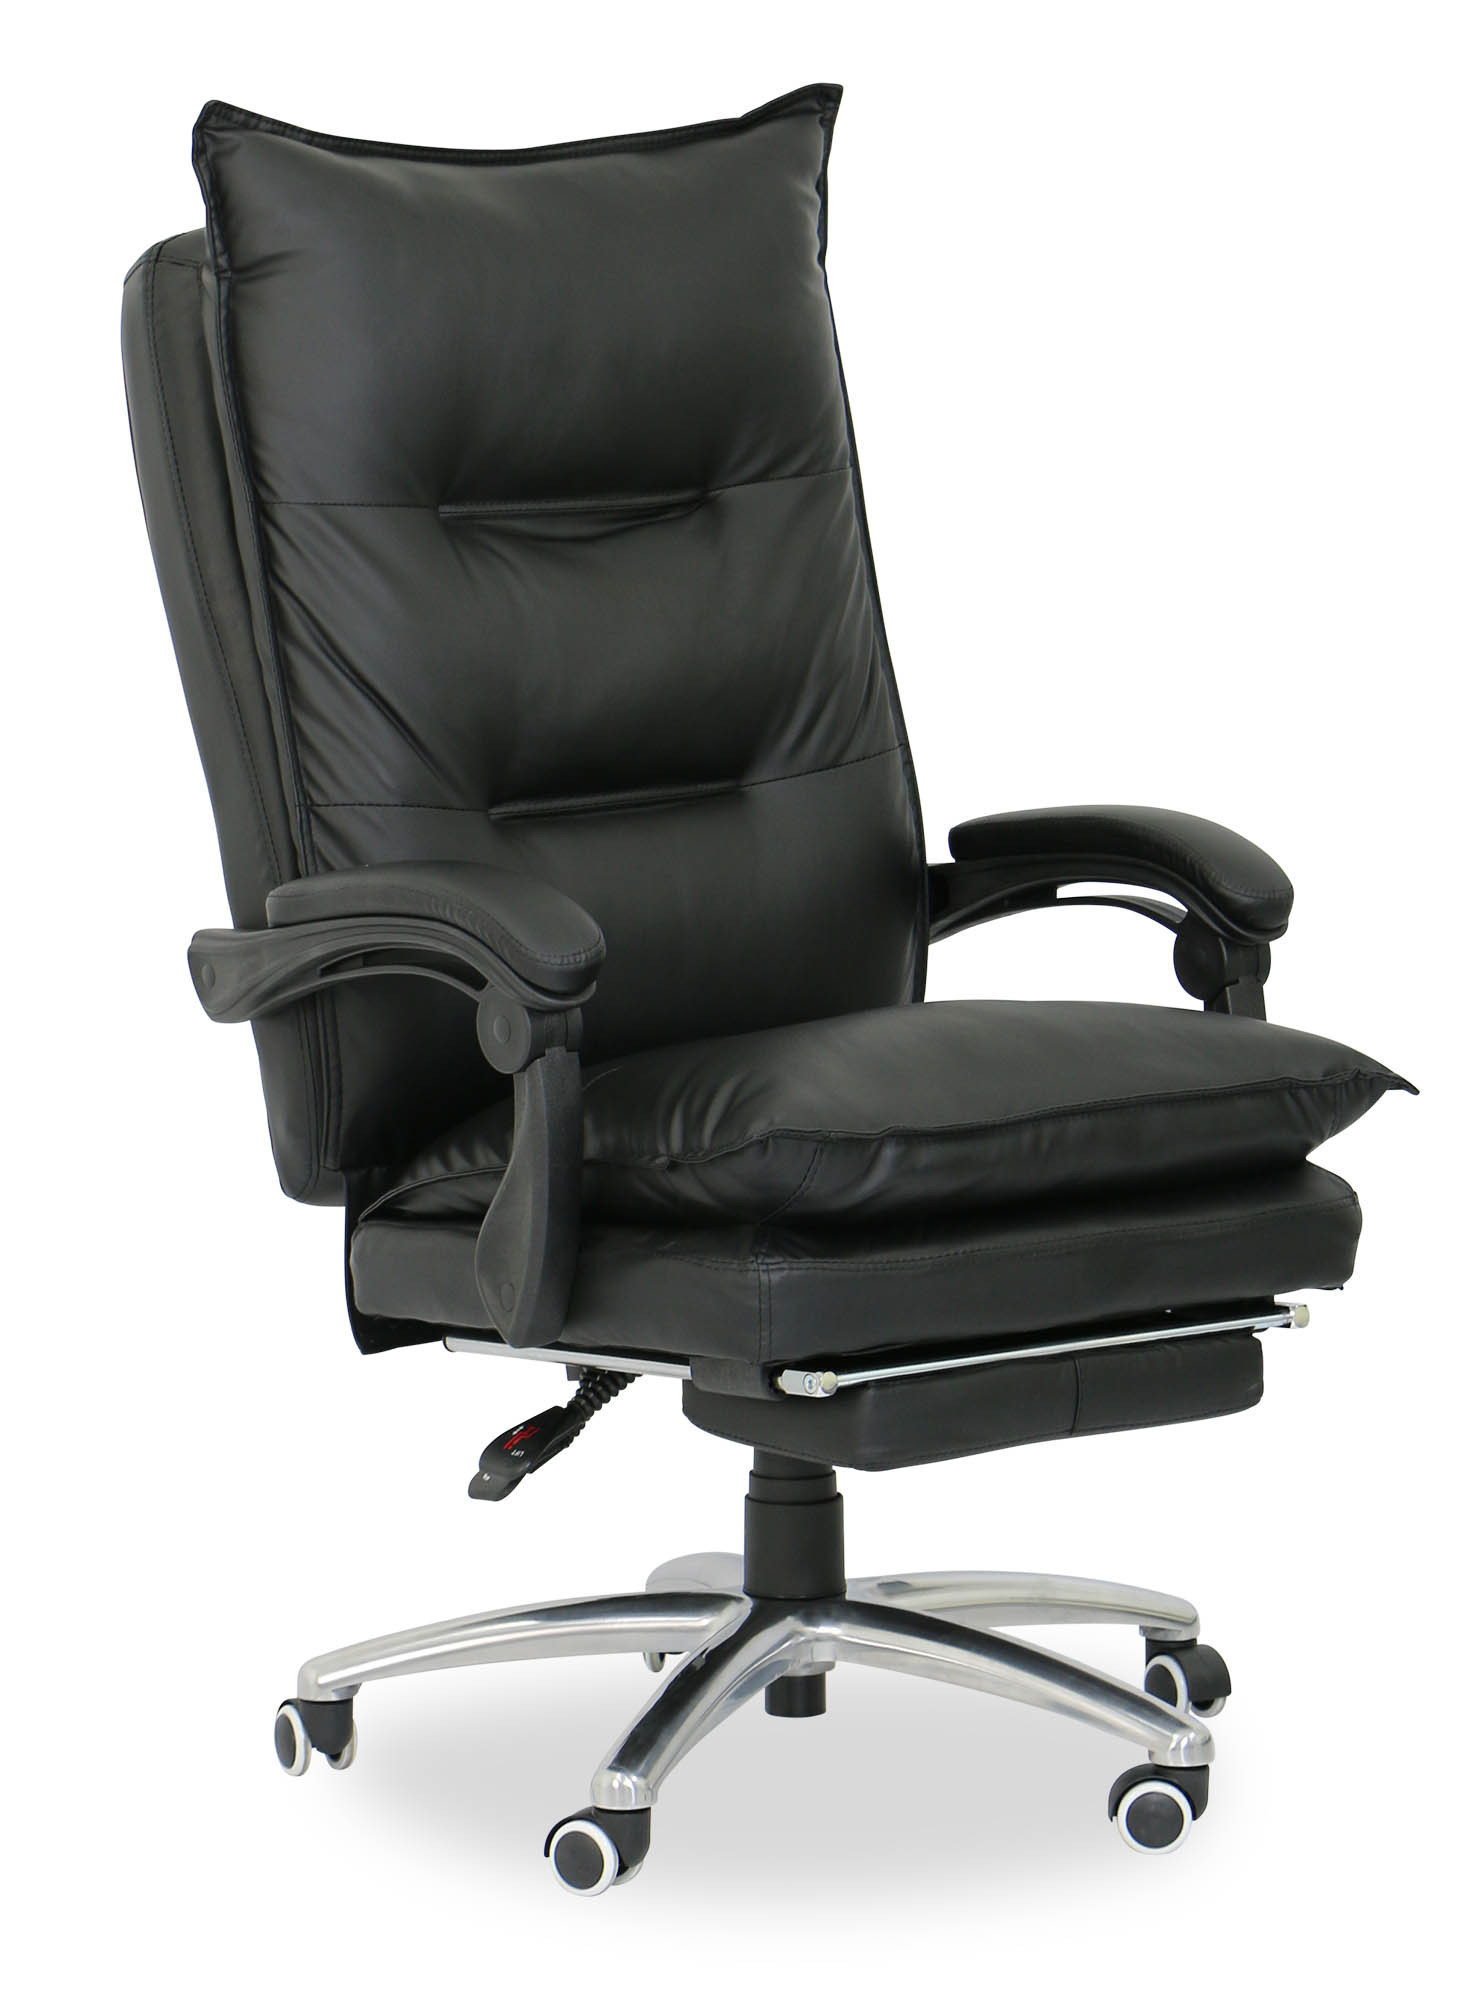 Executive Office Furniture: Deluxe Pu Executive Office Chair (Black)